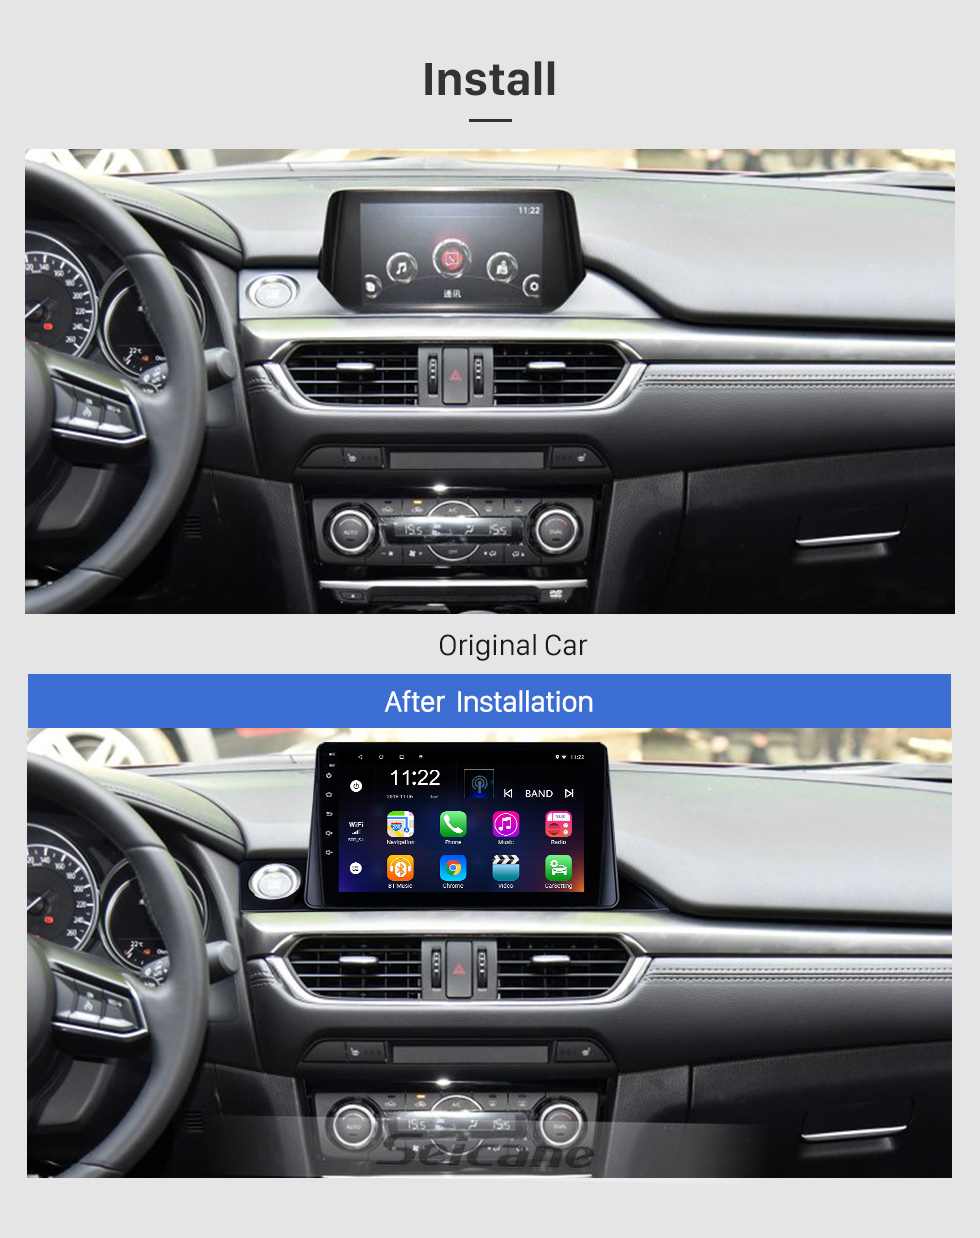 Seicane 9 inch HD Touch Screen 2017 Mazda ATENZA Android 8.1 Radio GPS Navigation system with Bluetooth USB 3G WIFI OBD2 Mirror Link Rearview Camera